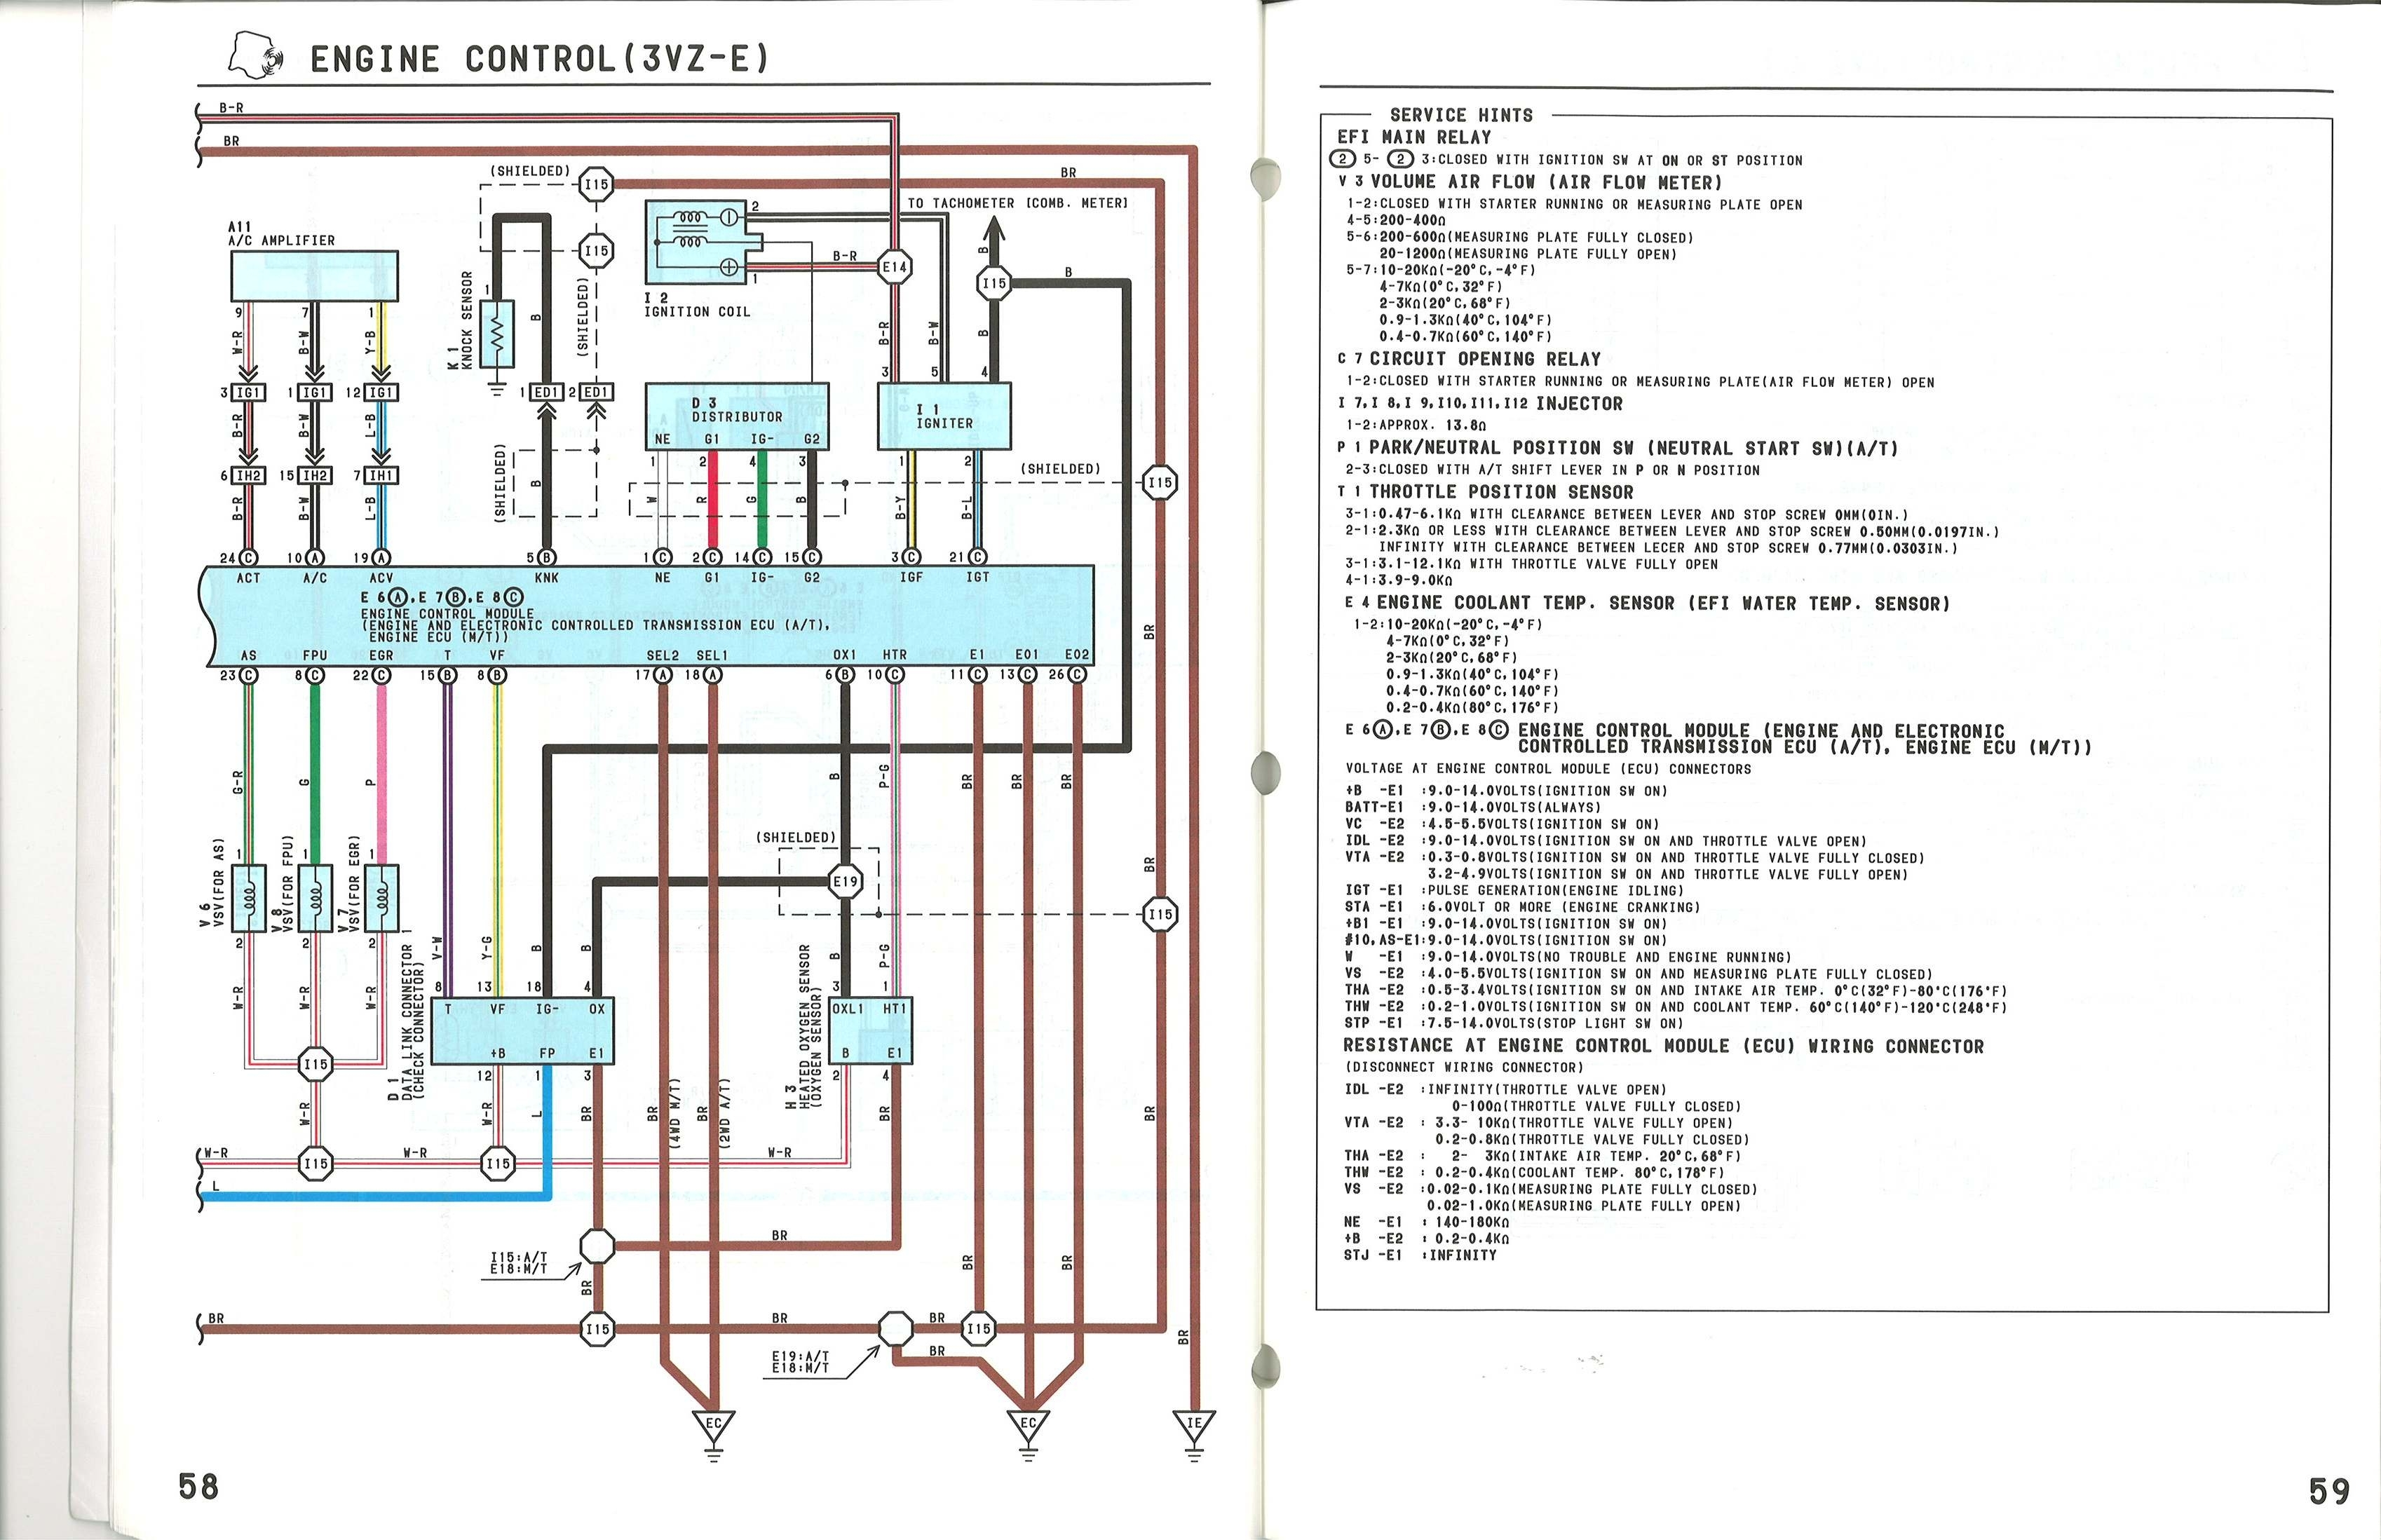 Ecu Diagram For Vz E Yotatech Forums In Toyota Runner Wiring Diagram on 1993 Nissan Wiring Harness Diagram